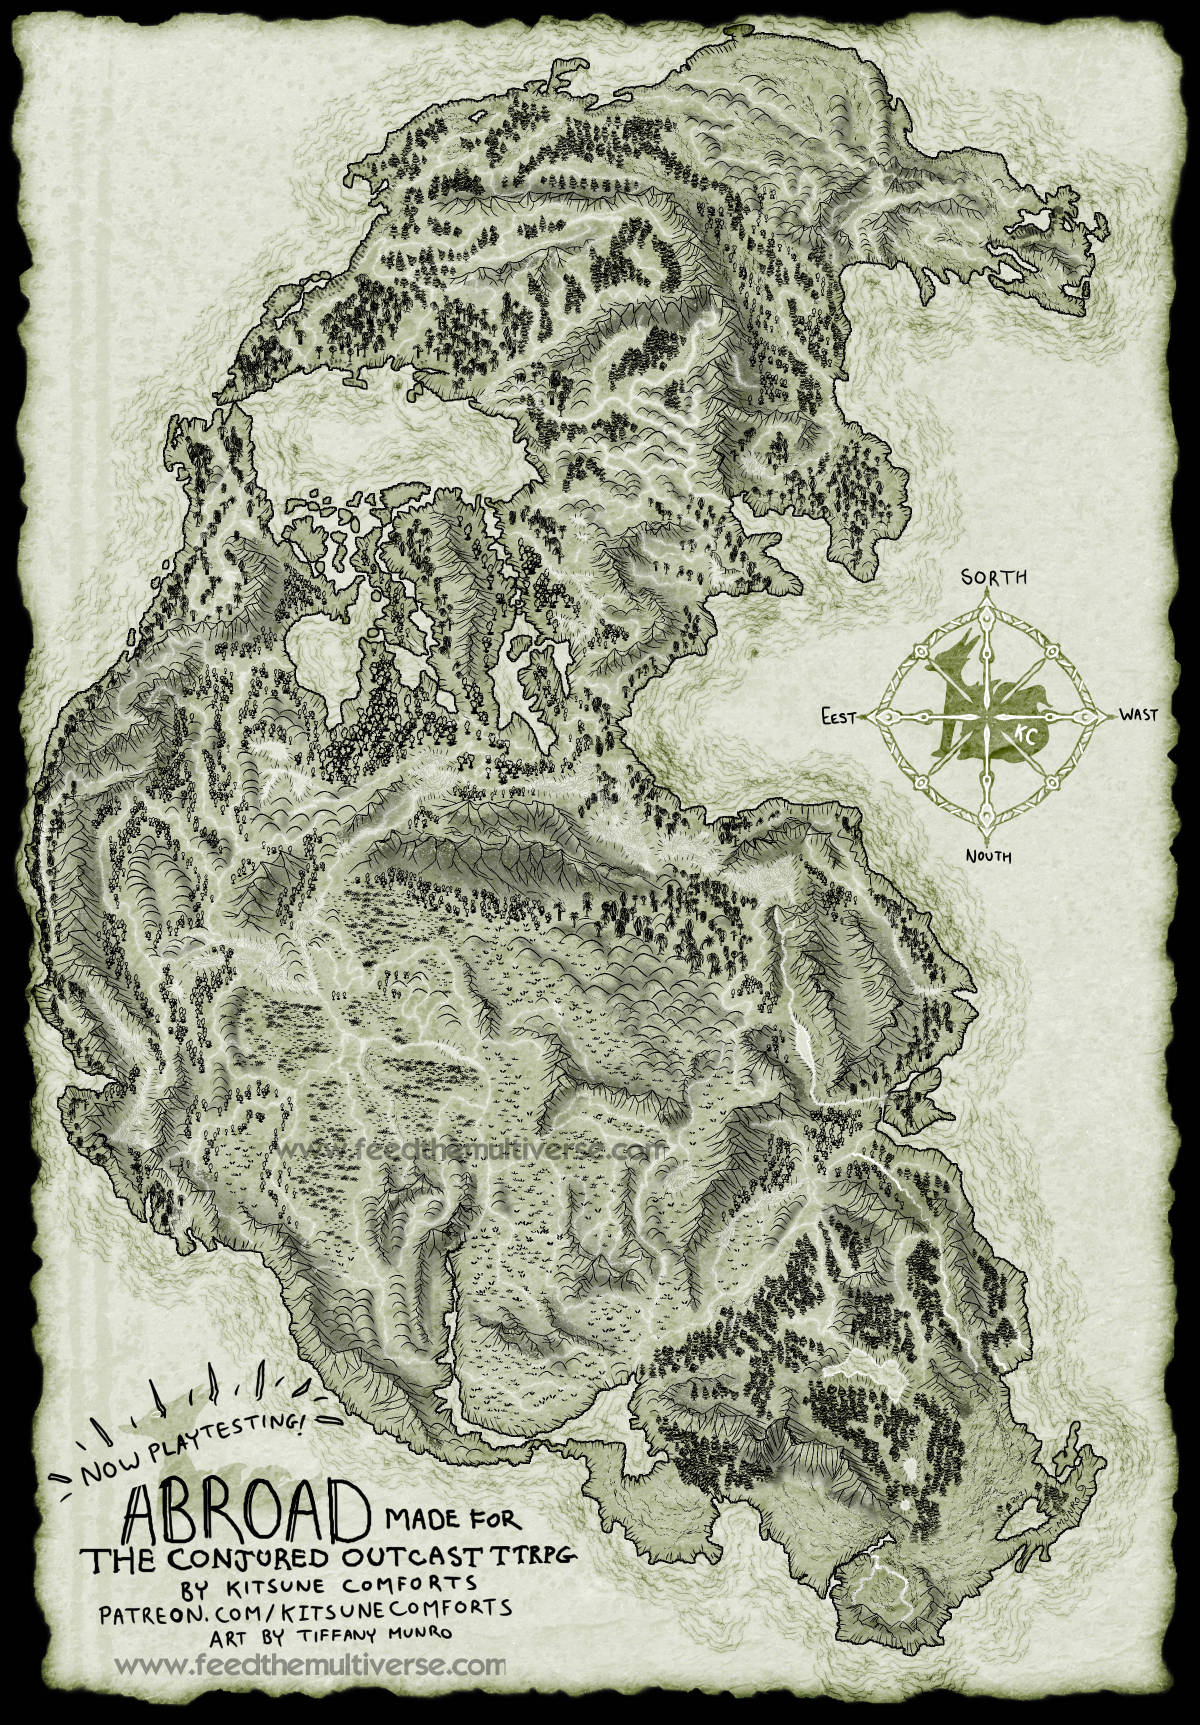 Pangea Pangia fantasy map of prehistoric single continent Earth monocontinent megacontinent continental drift dinosaur mythological period pirate medieval fantasy map TTRPG RPG DM GM roleplaying game furry kitsune fandom minecraft Lord of the Rings Game of Thrones earth terra supernatural mythic creatures gaming furry